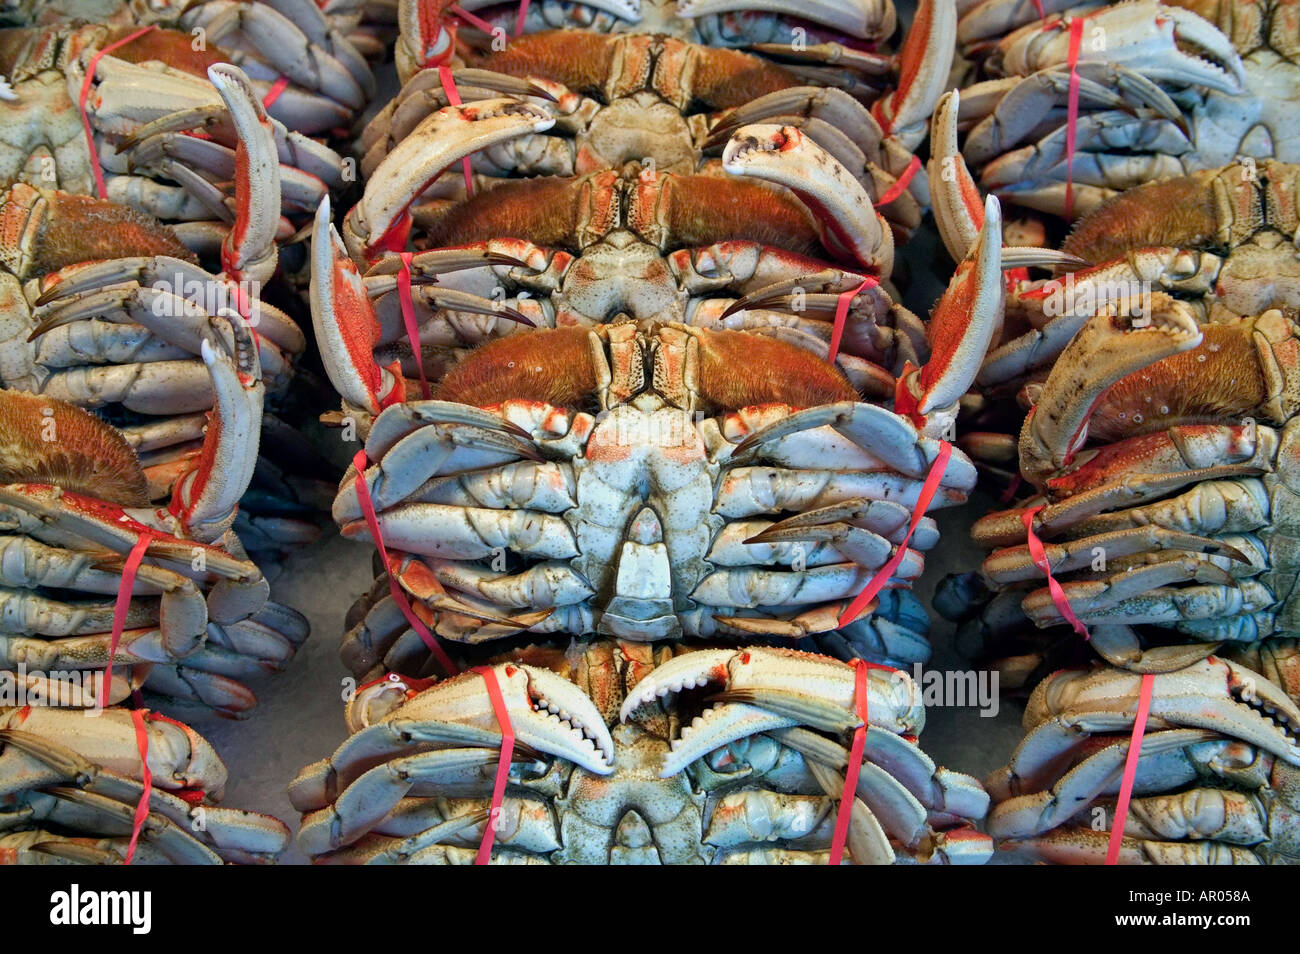 Stack of Dungeness crab at Pike Place Market Seattle Washington - Stock Image